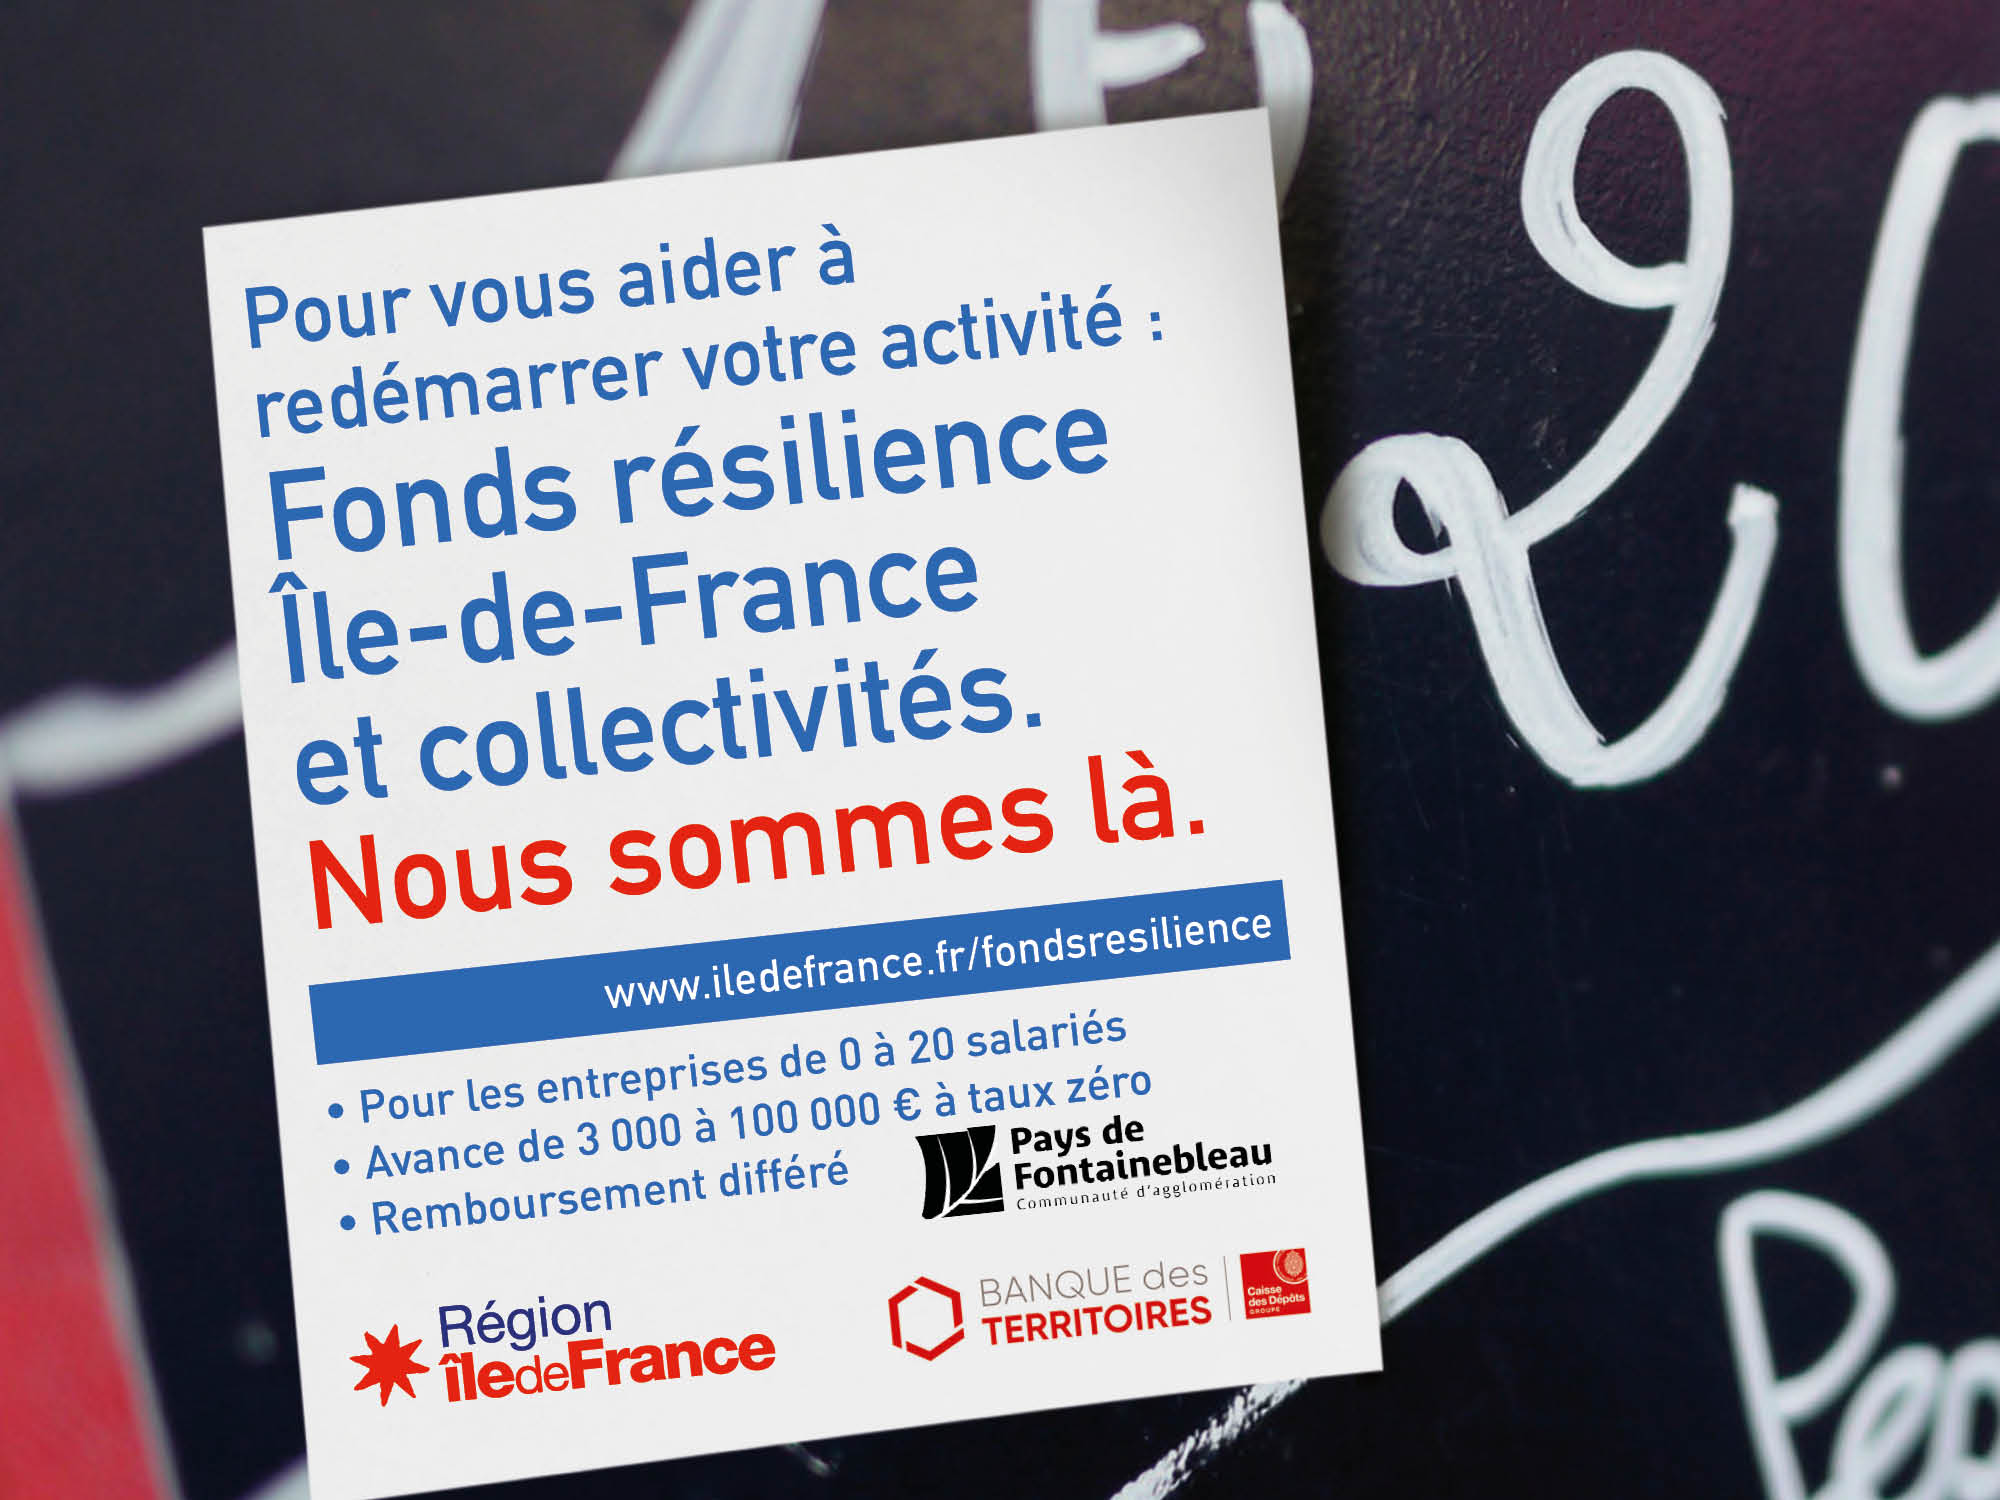 fonds resilience